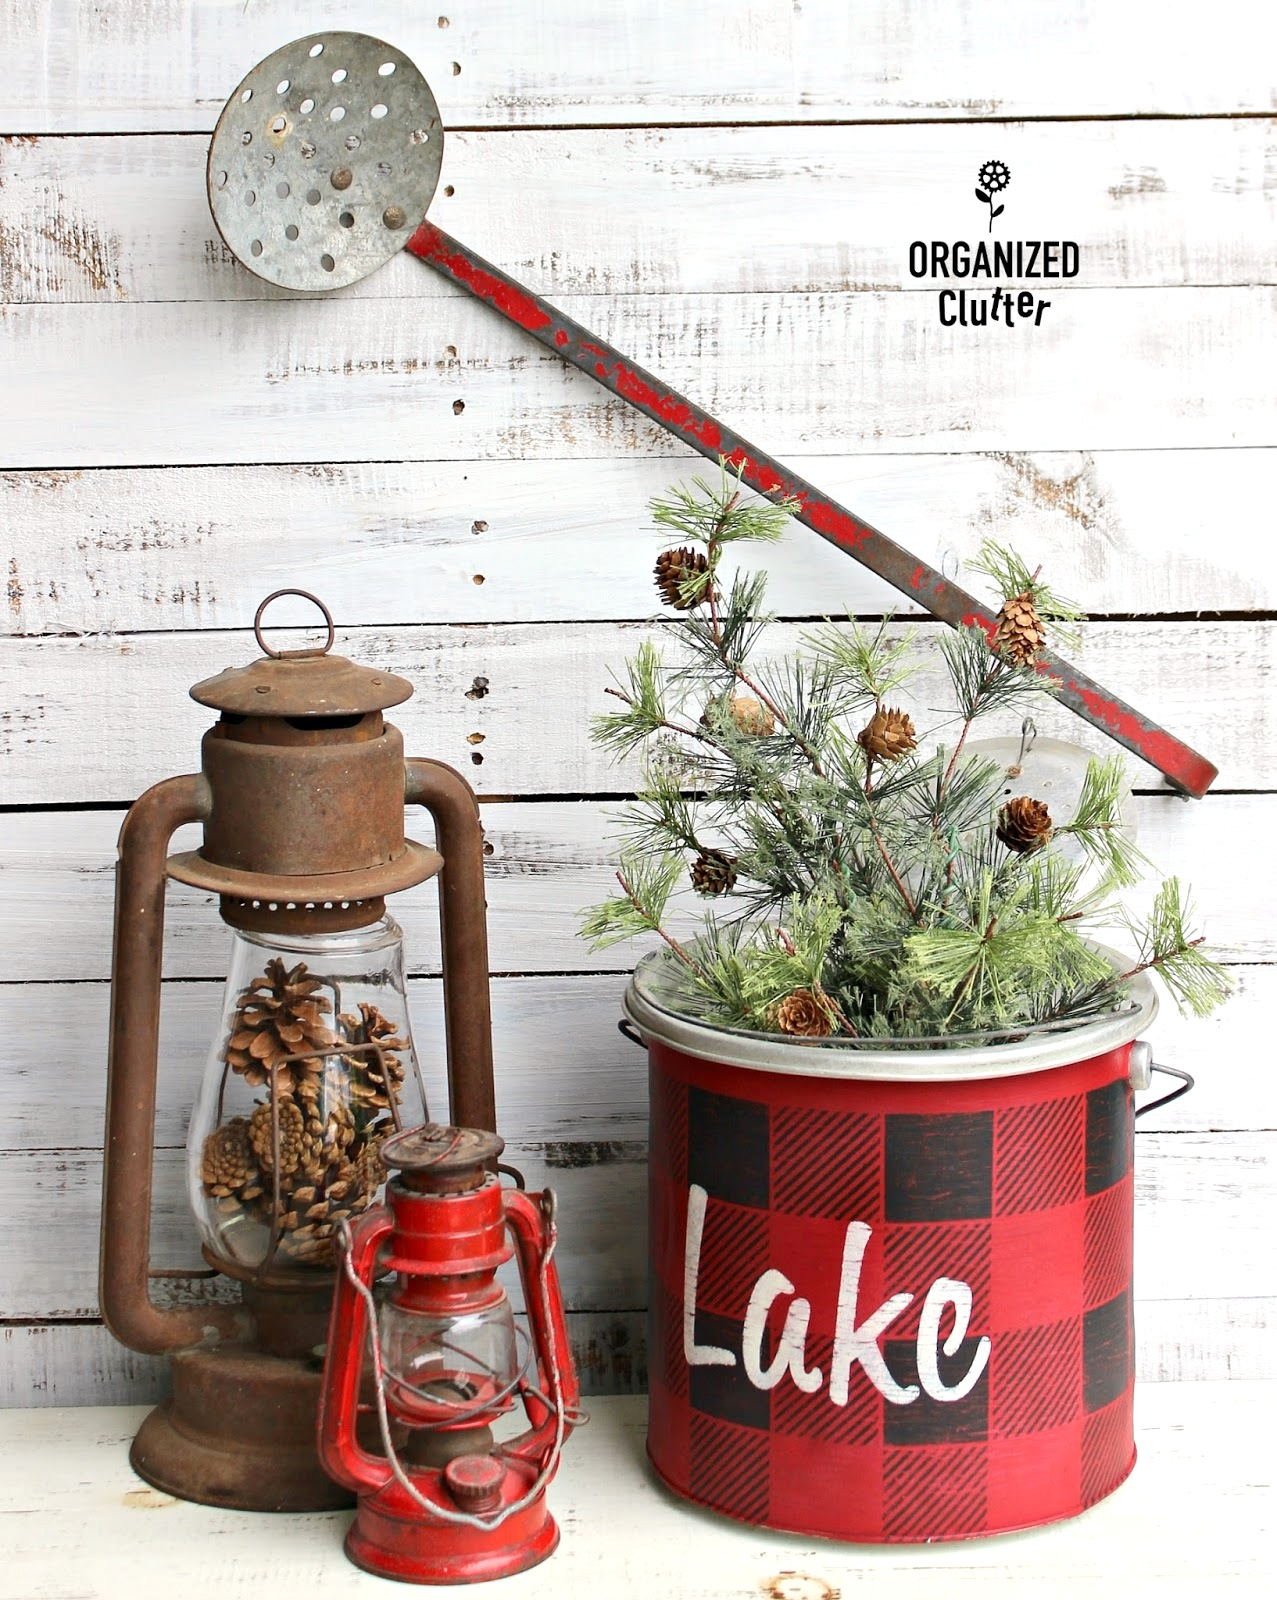 Buffalo Check cabin-styled Christmas planter by Organized Clutter, featured on Funky Junk Interiors